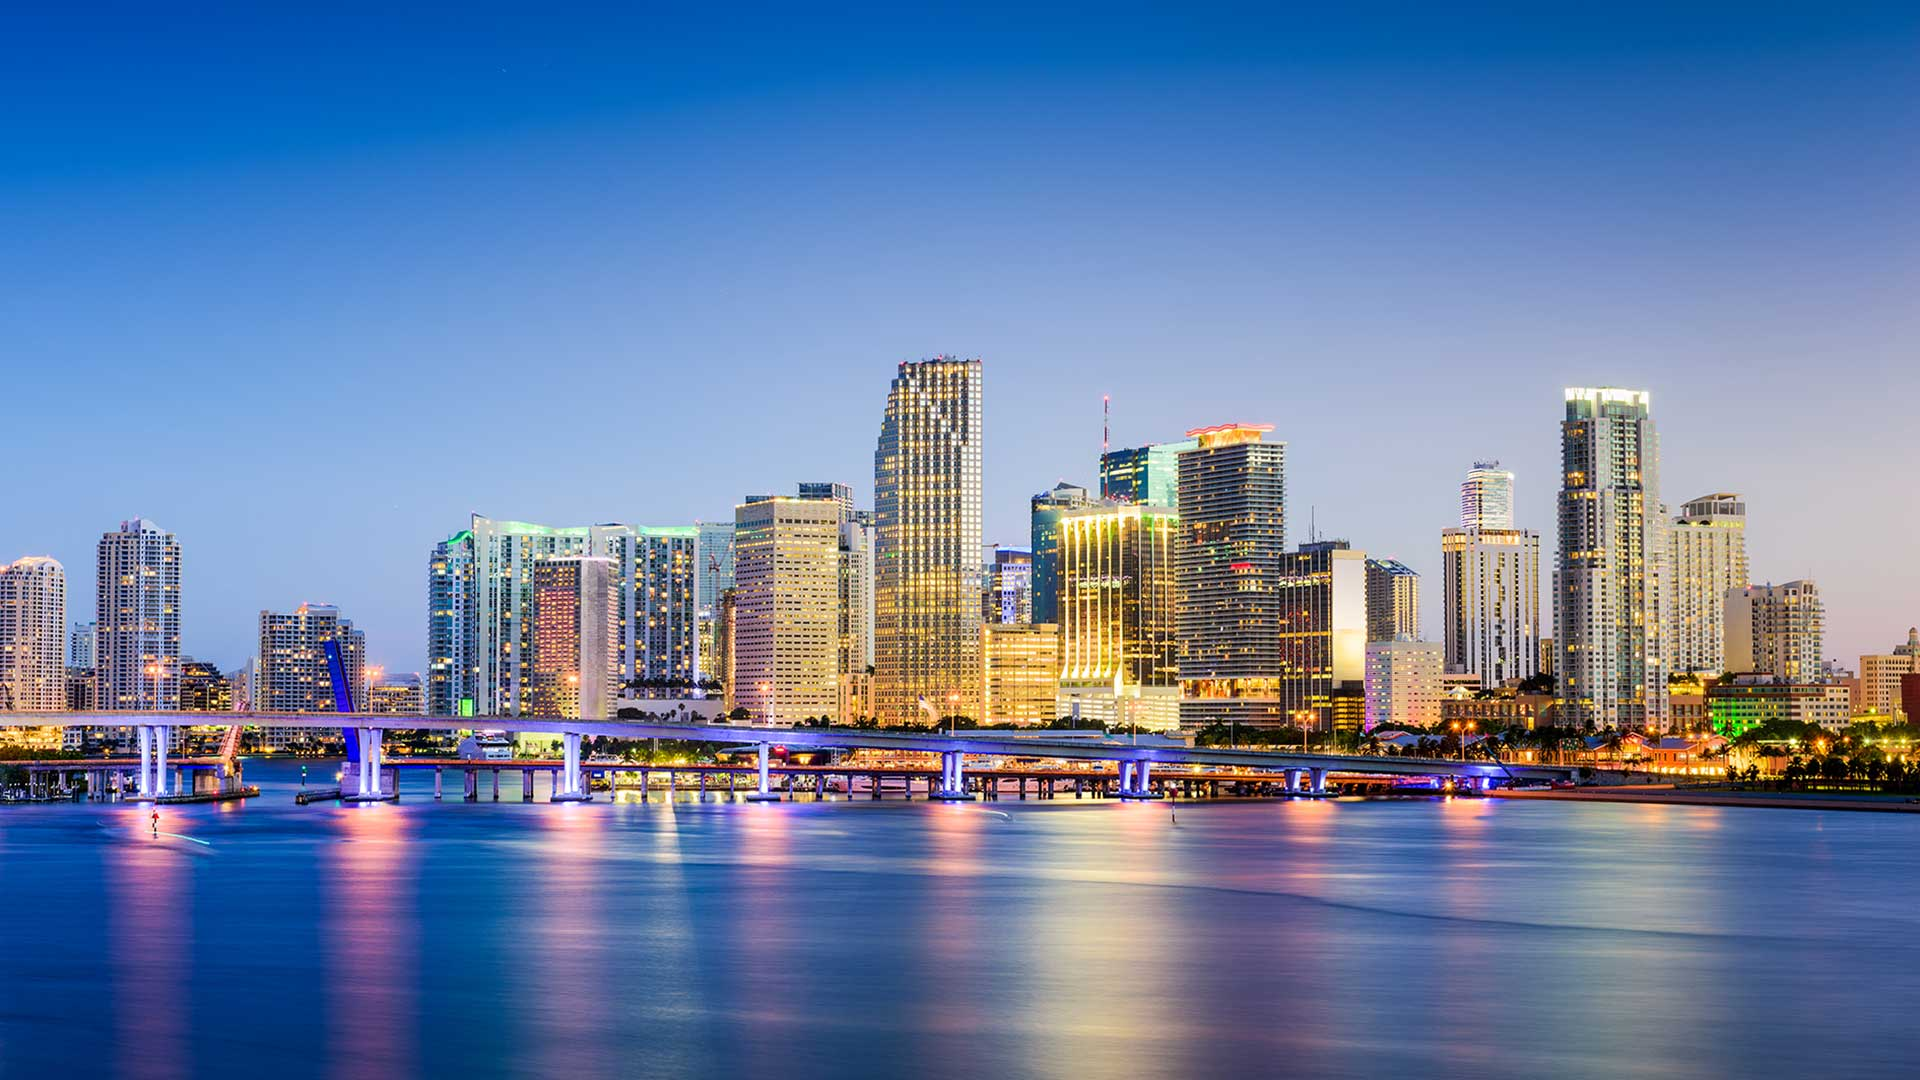 Panorama to illustrate dating in miami